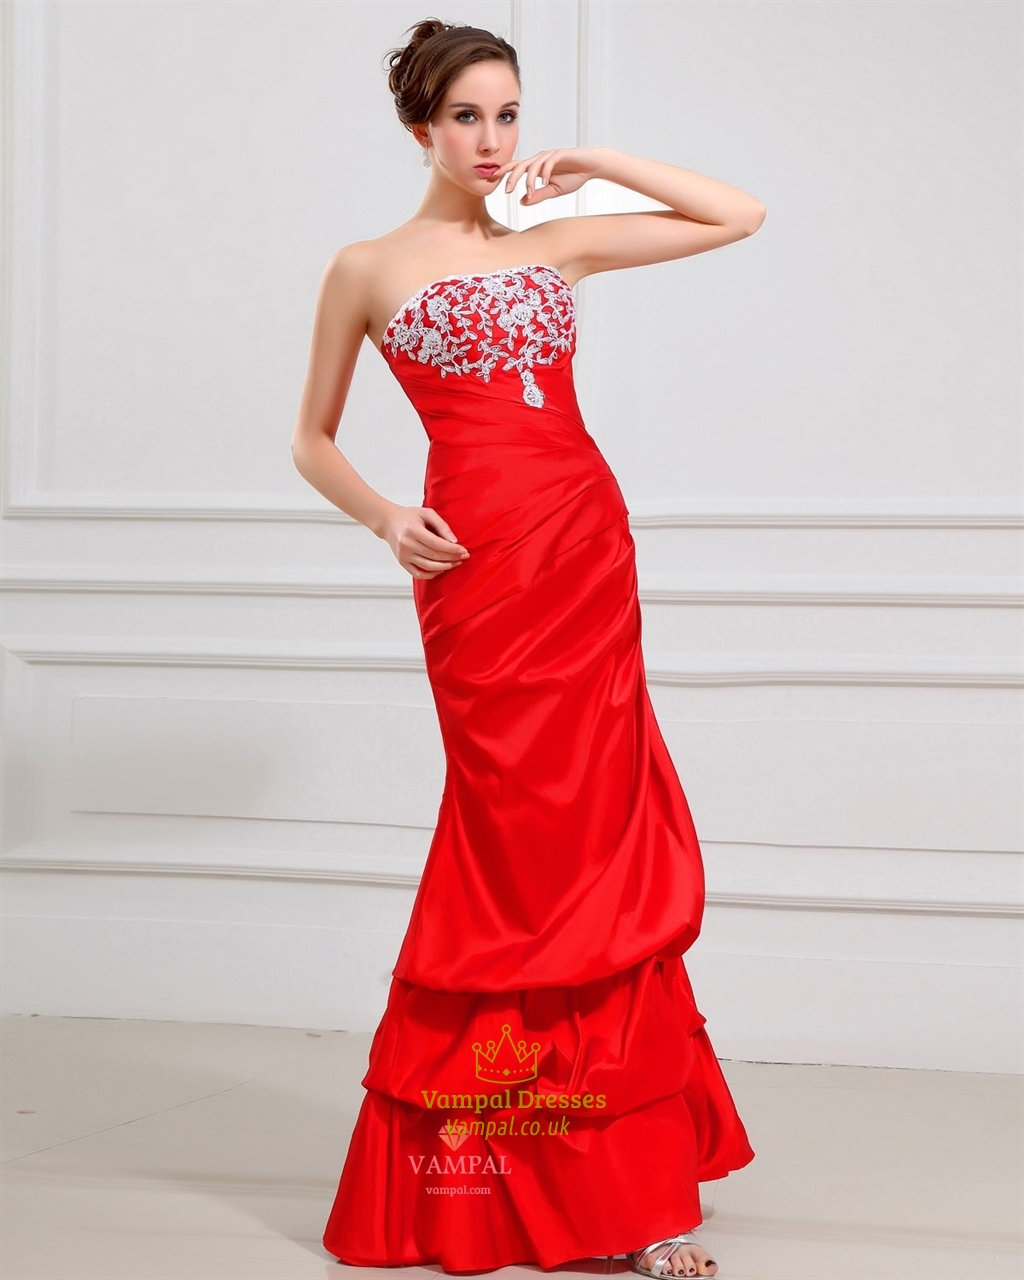 Red Prom Dresses 2016,Red Formal Gowns And Dresses | Vampal Dresses